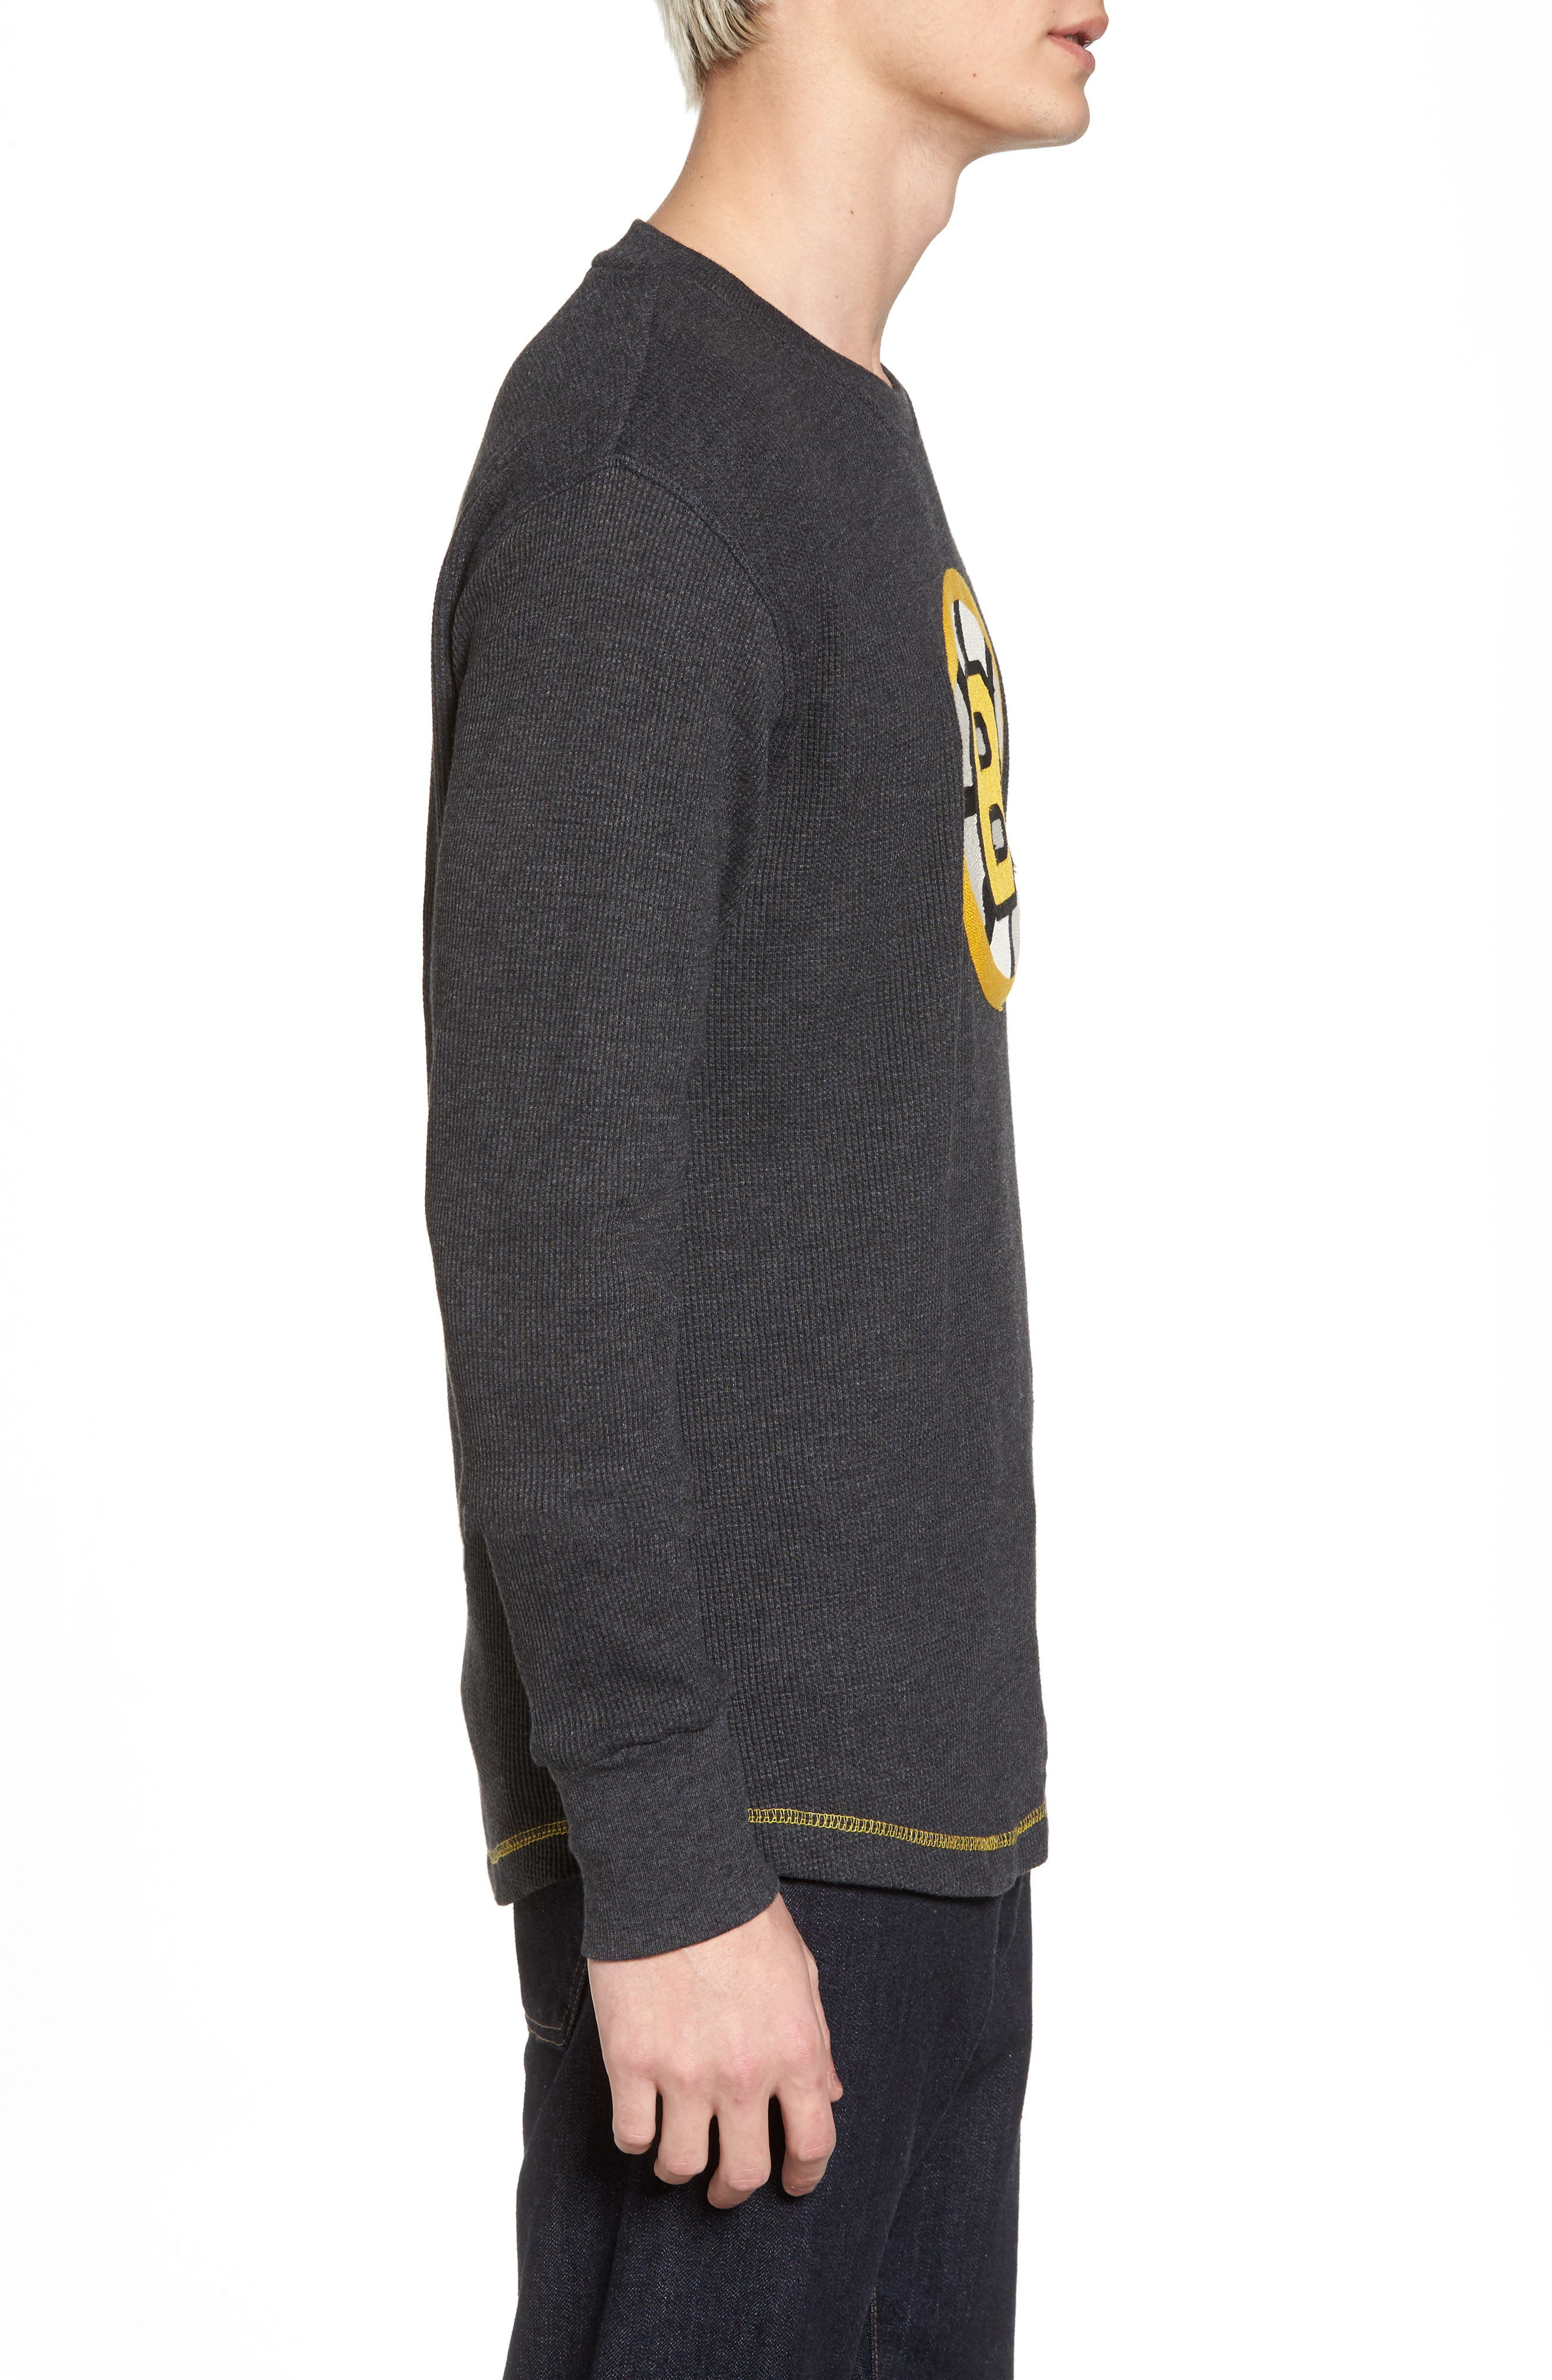 Boston Bruins Embroidered Long Sleeve Thermal Shirt,                             Alternate thumbnail 3, color,                             001